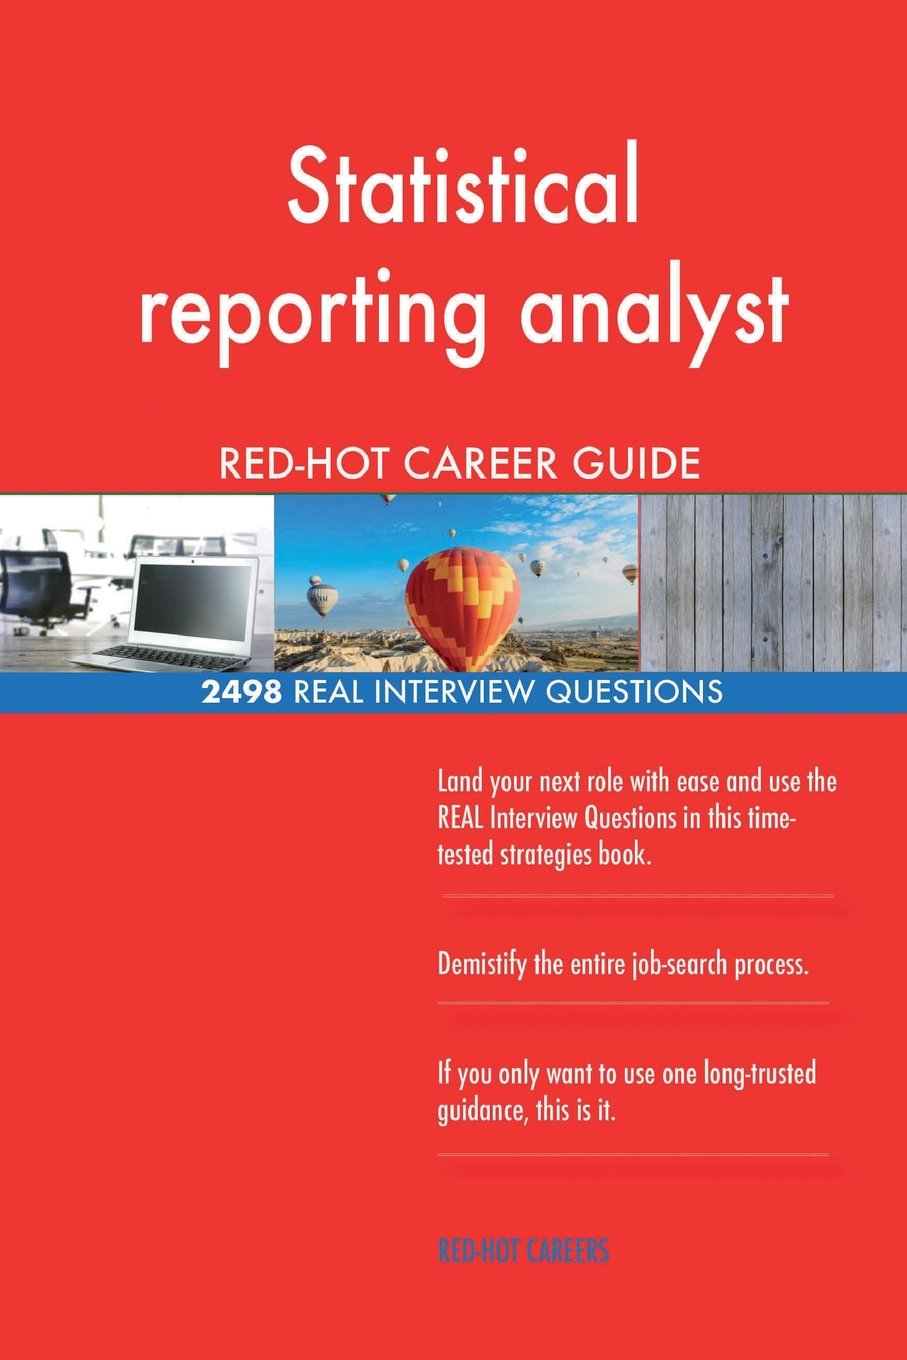 Statistical reporting analyst RED-HOT Career